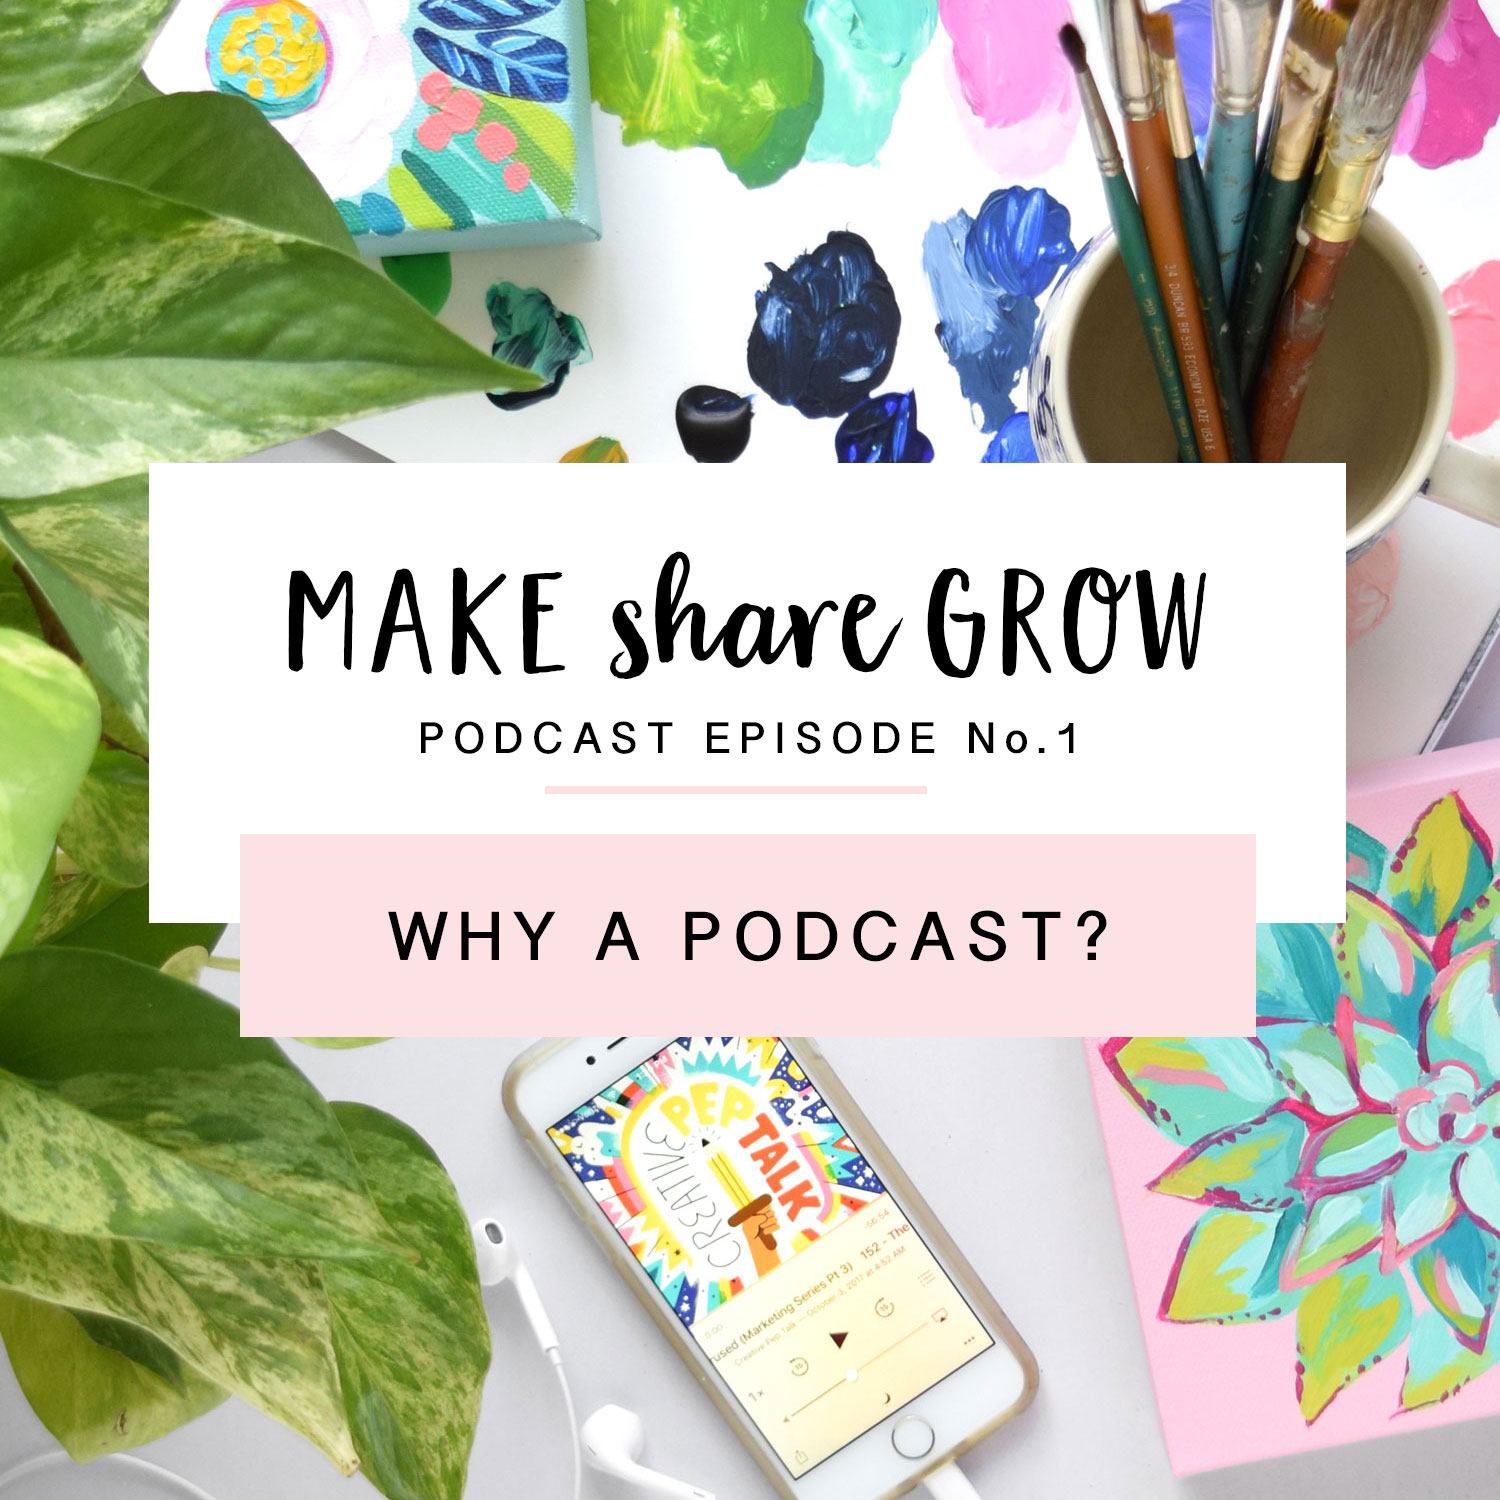 Make-Share-Grow-Podcast-Episode-1-art.jpg